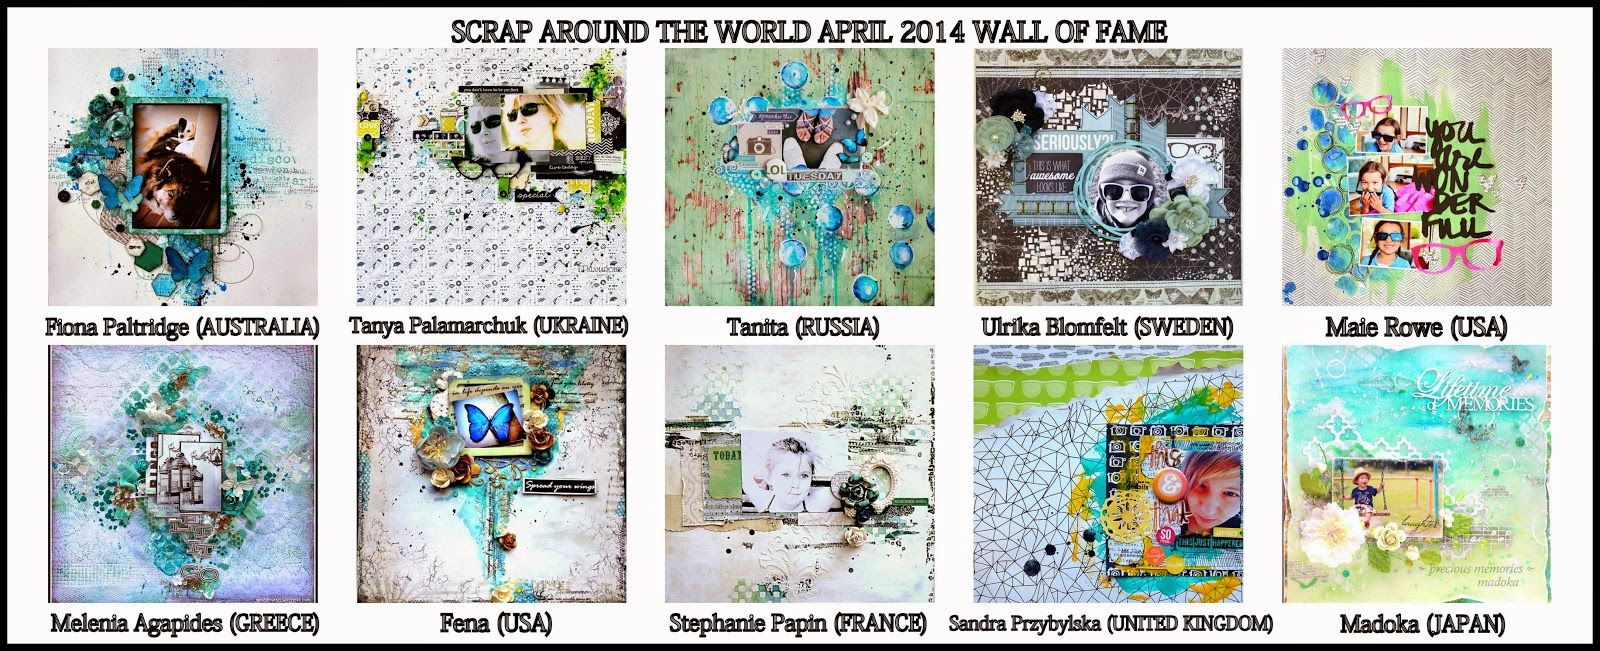 http://scraparoundtheworld.blogspot.gr/2014/05/april-2014-winner-features-finalists.html